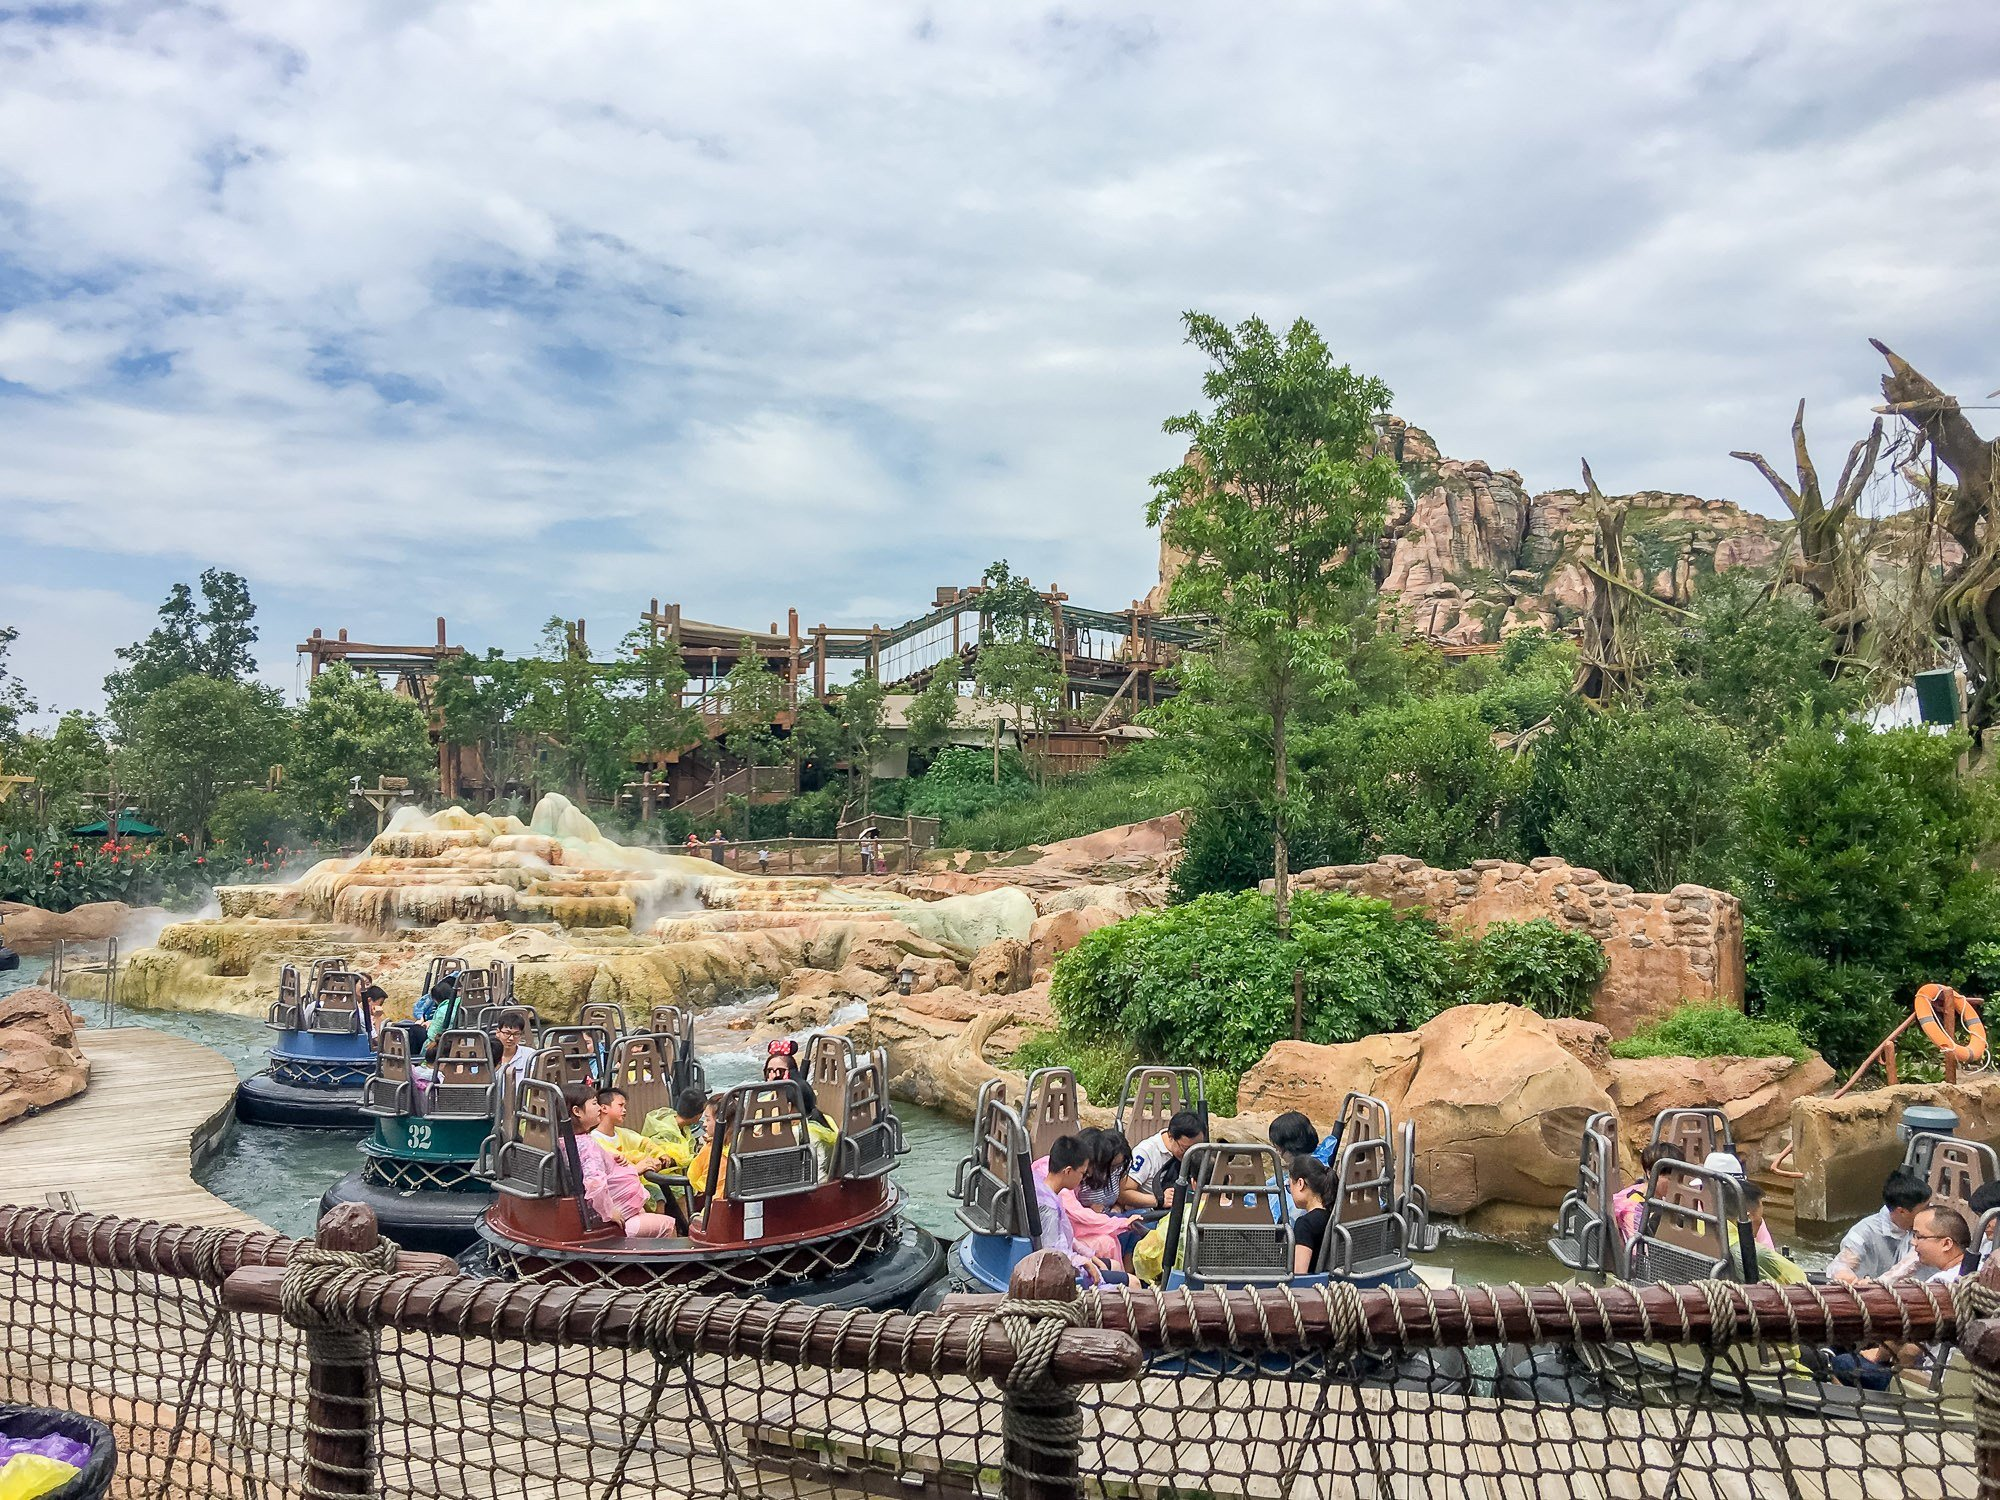 The Roaring Rapids ride at Shanghai Disneyland keeps guests cool in summer.